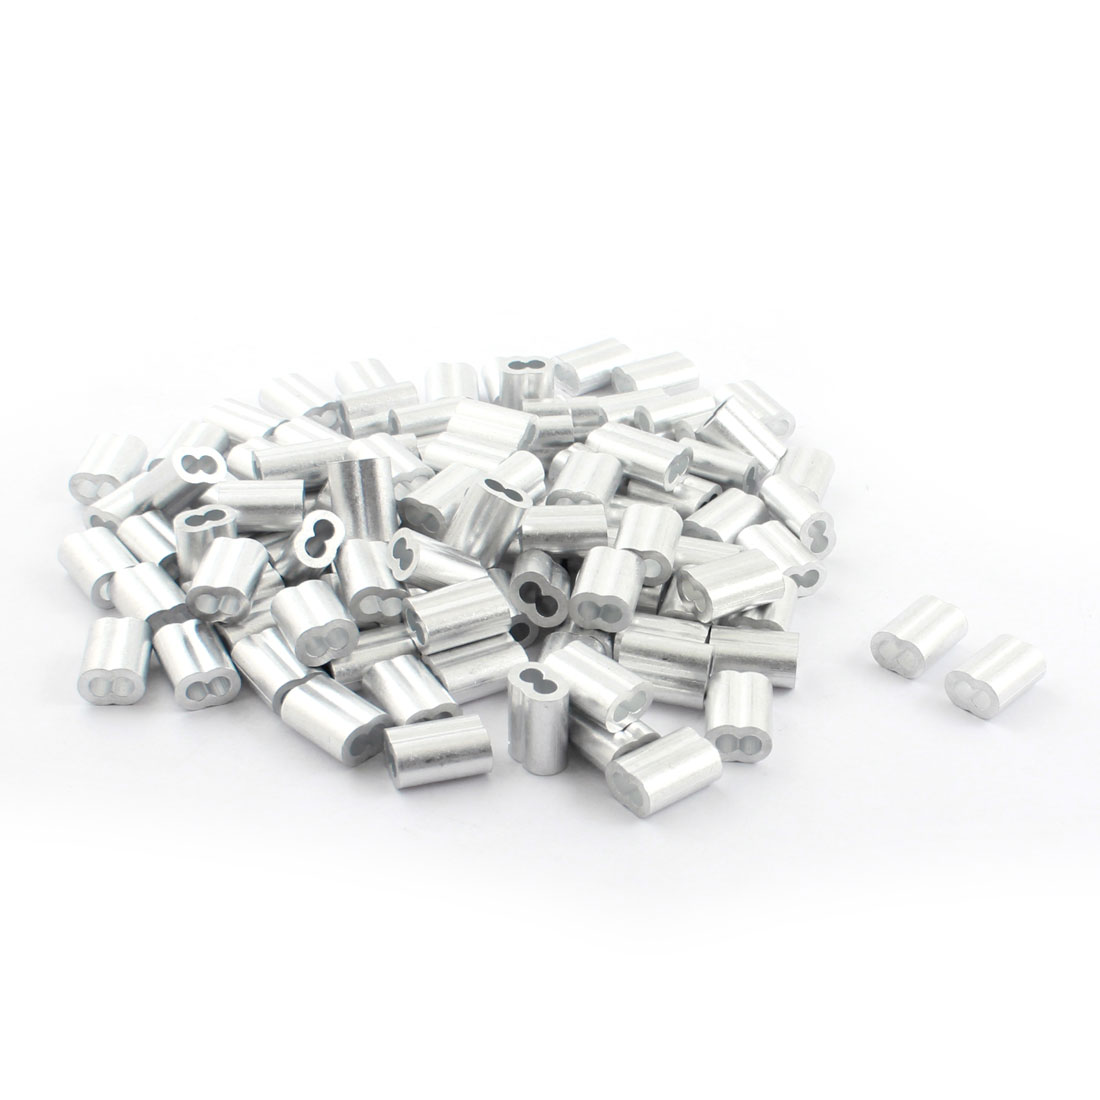 "100Pcs 1/8""x 5/8"" Aluminum Hourglass Ferrules Sleeve Crimp for 3mm Wire Rope"